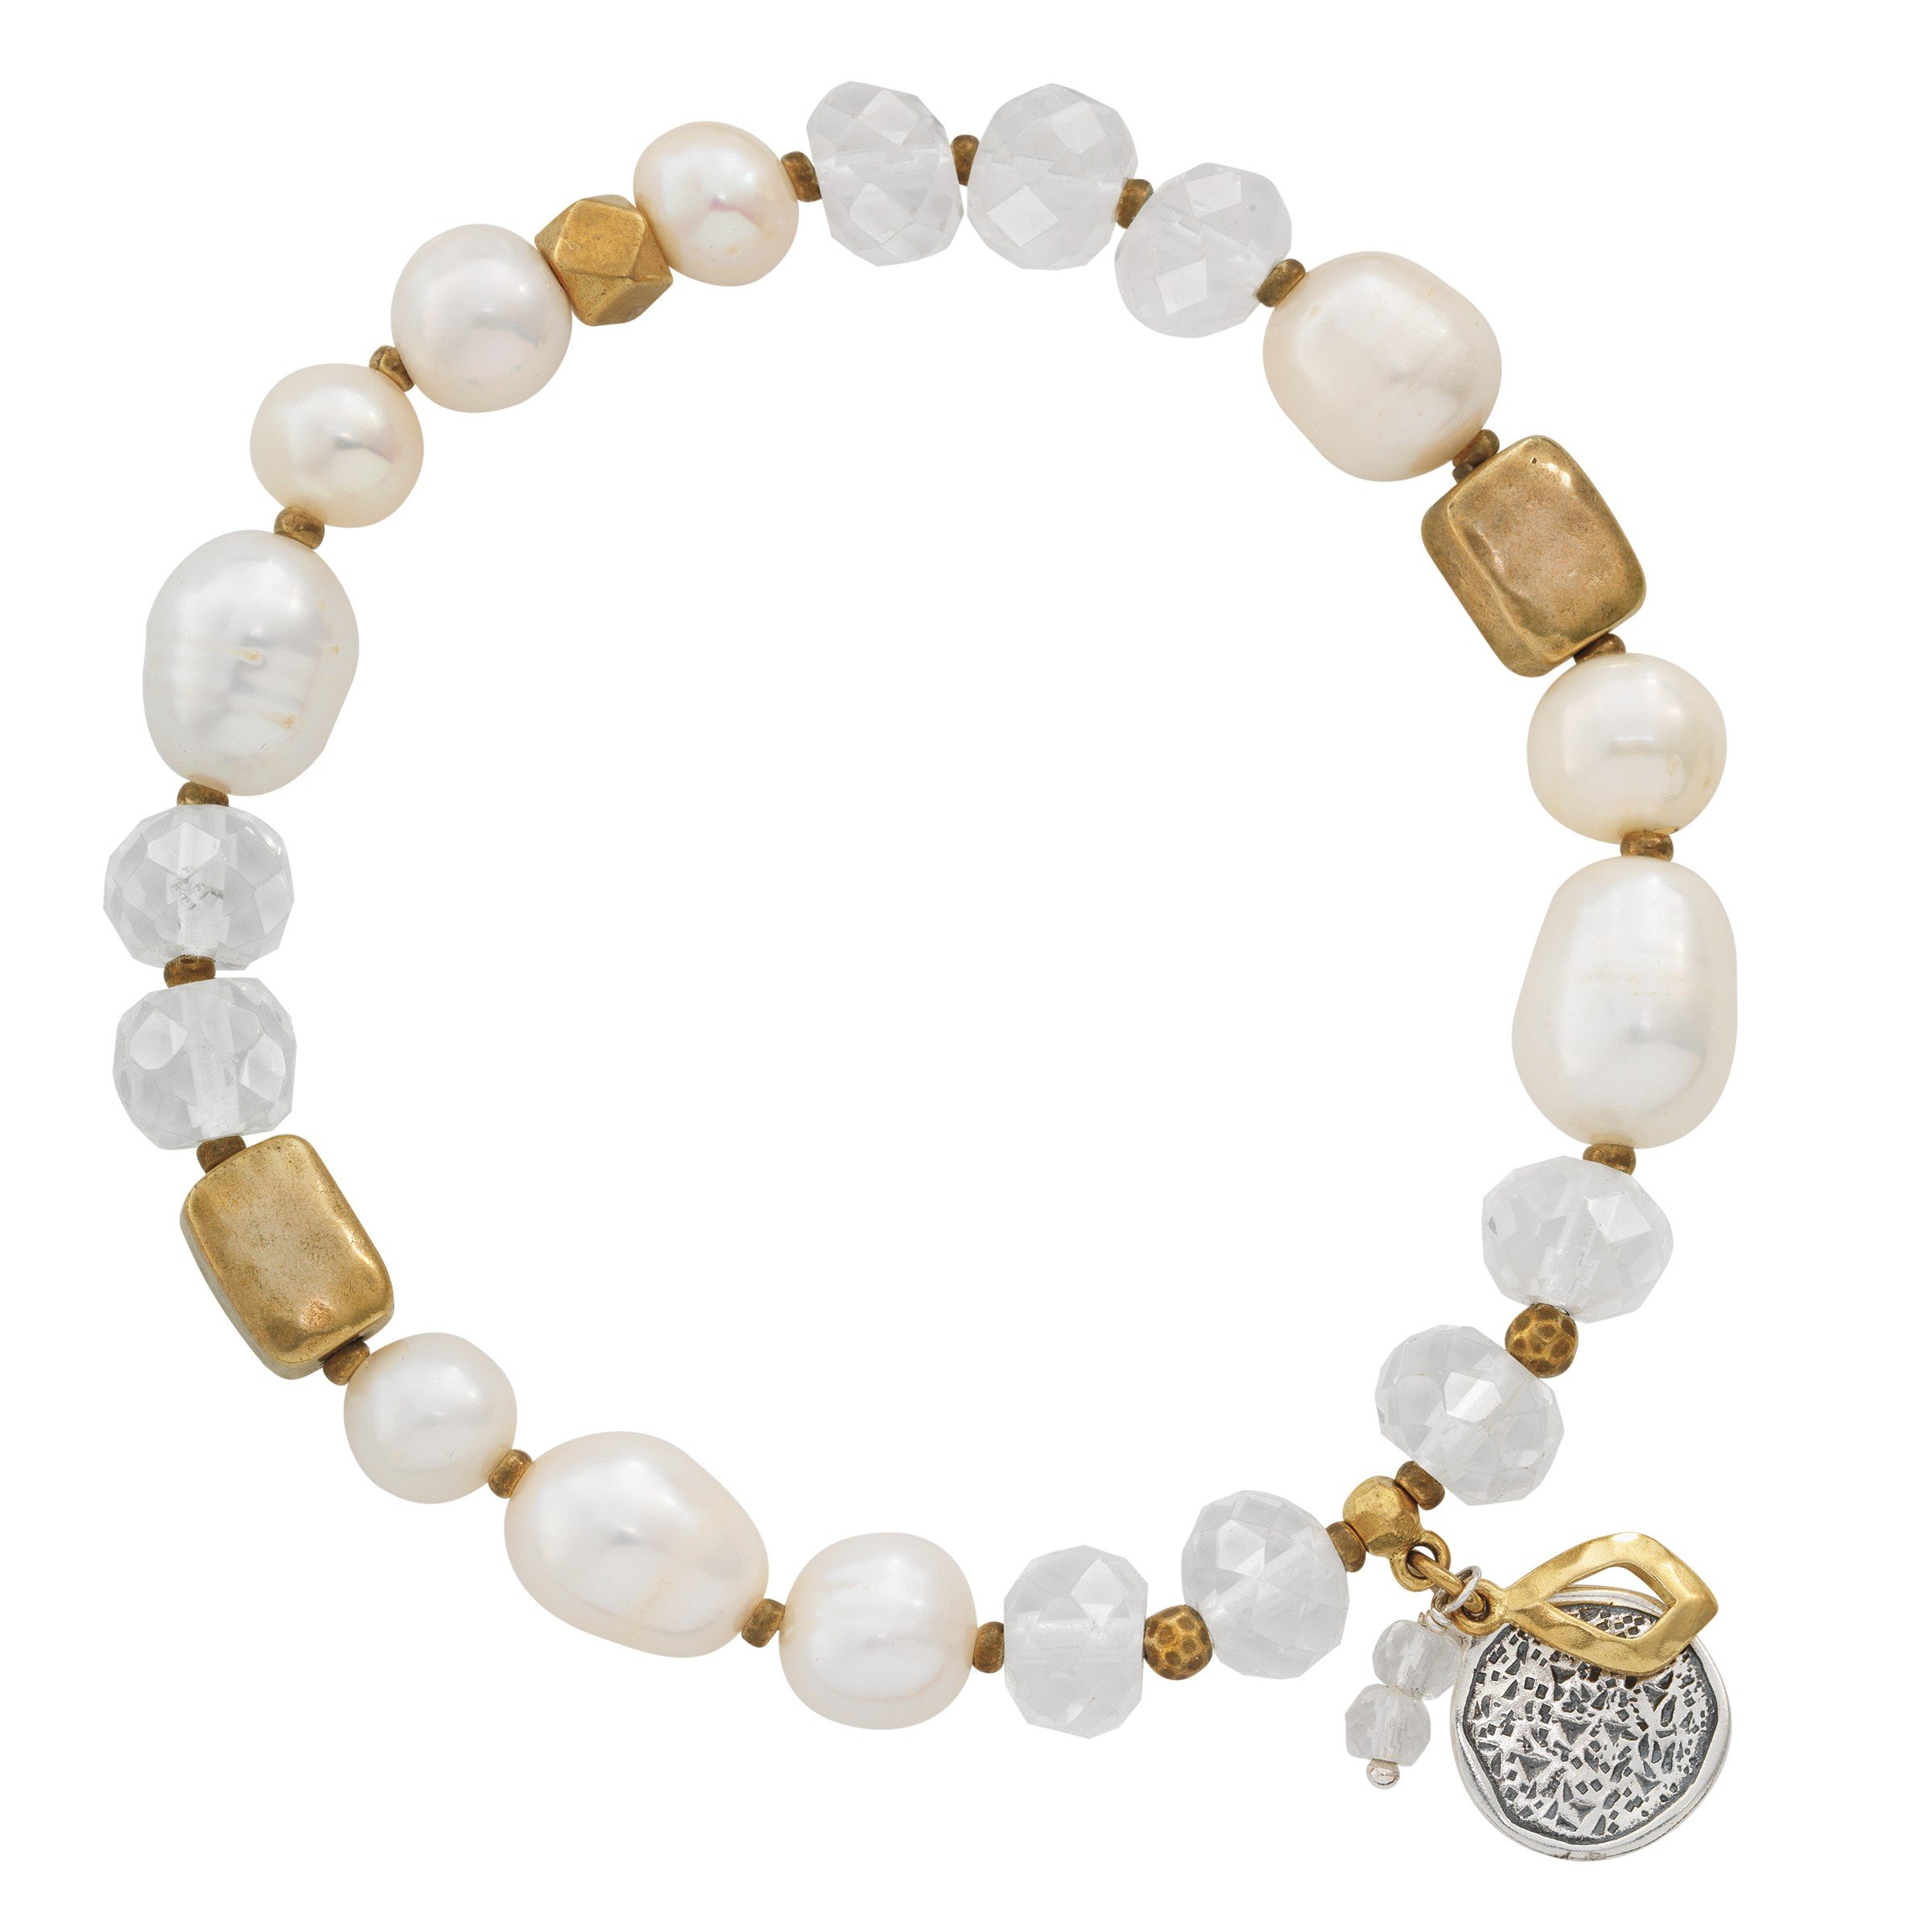 Silpada 'Down To Earth' 7.5 mm Freshwater Cultured Pearl & Rock Crystal Stretch Bracelet in Sterling Silver and Brass, 6.75''